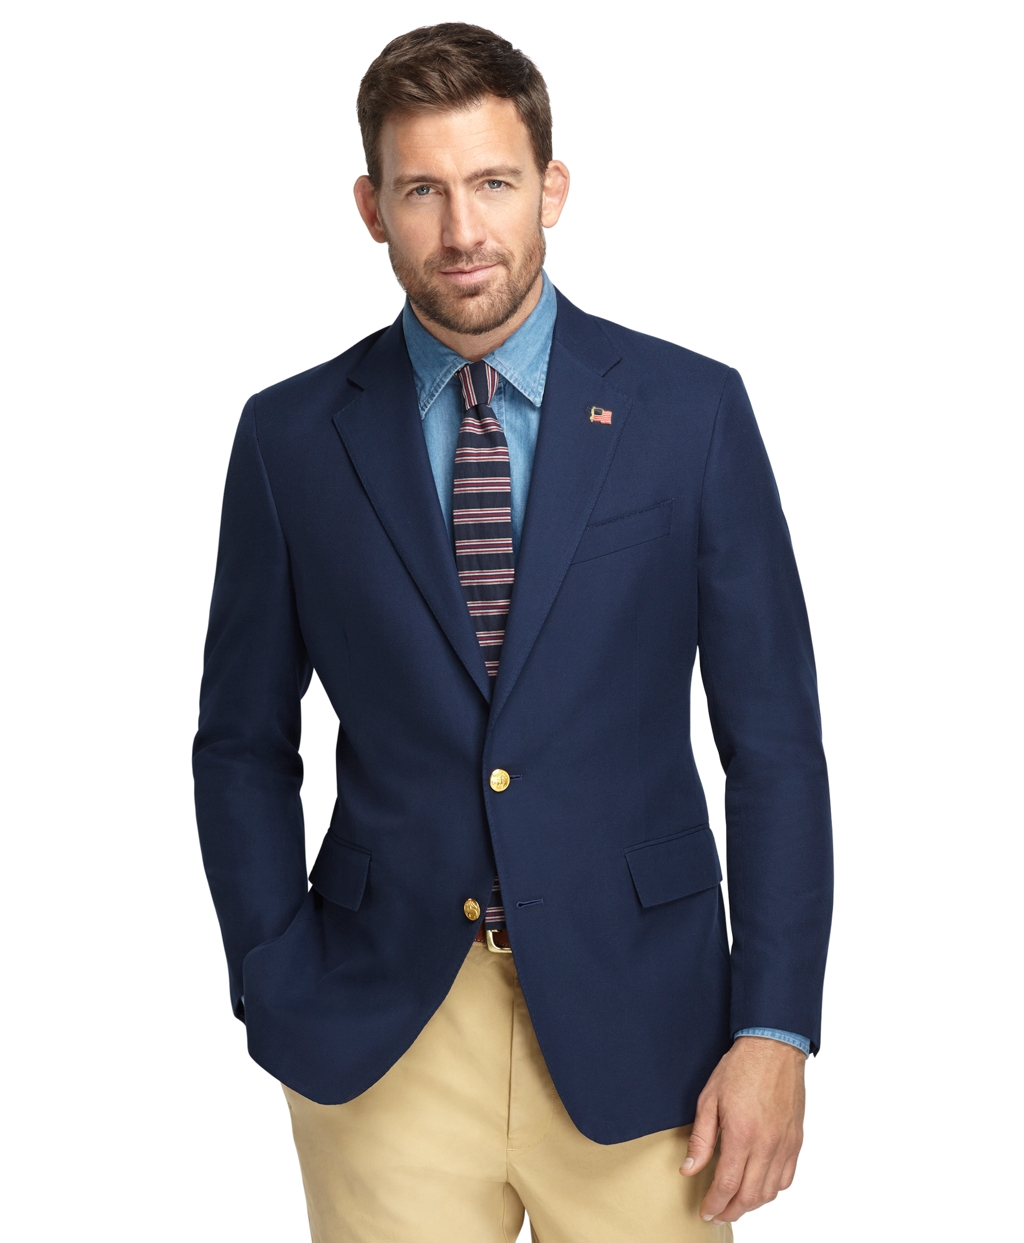 If the jacket is dark brown make sure the pants aren't also really dark blue or the combination will look muddled. If the jacket is lighter, more towards tan/khaki, then light blue can work since the colors stay separated even in lighter hues, but dark blue pants will work too.